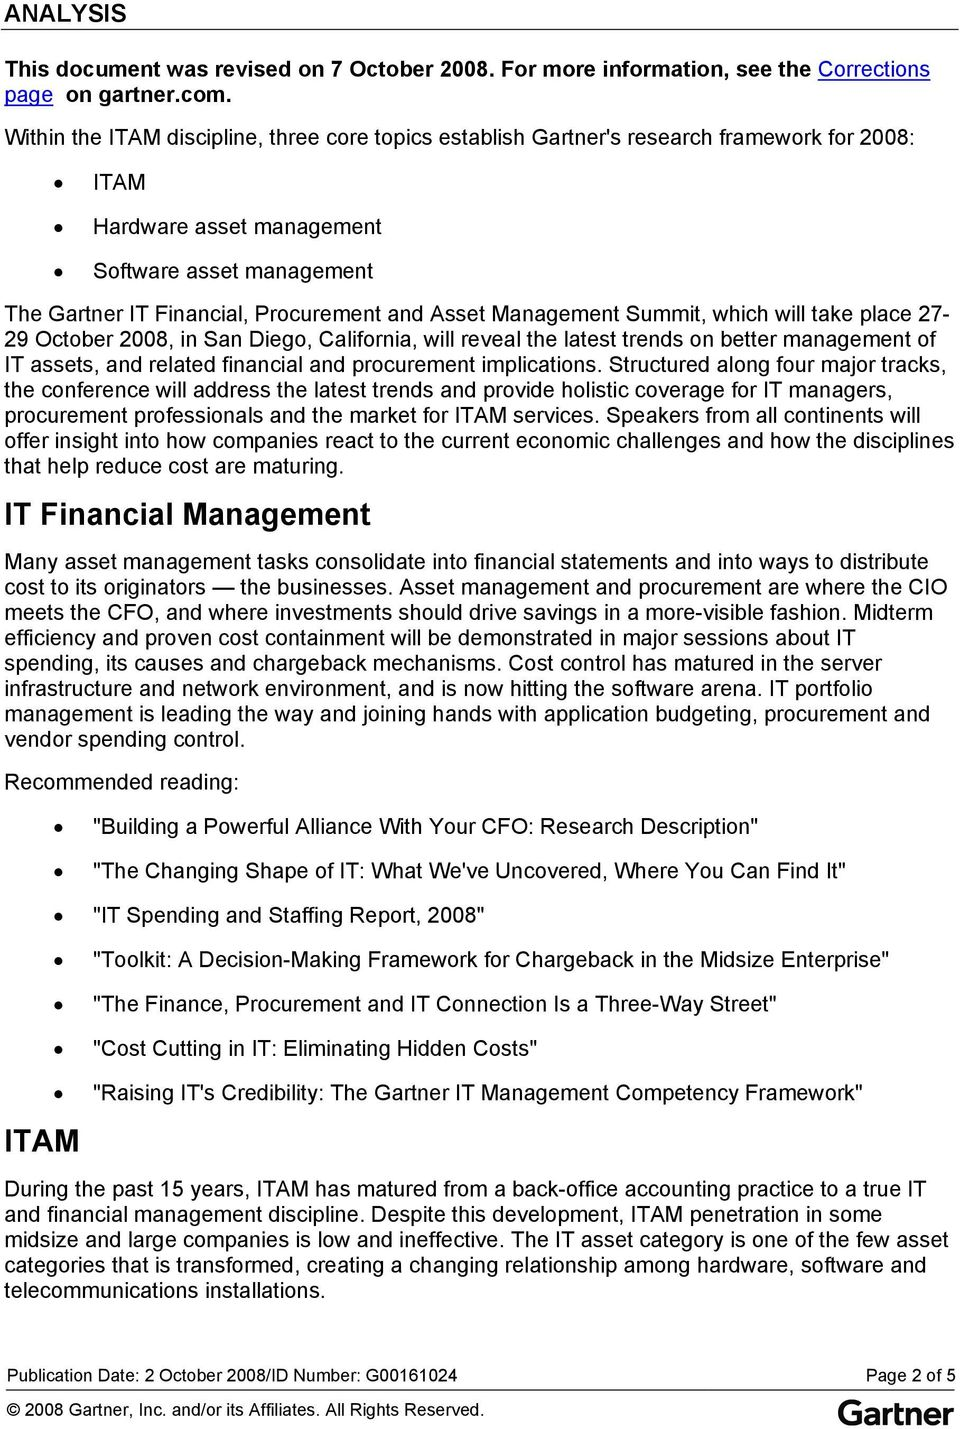 Management Summit, which will take place 27-29 October 2008, in San Diego, California, will reveal the latest trends on better management of IT assets, and related financial and procurement